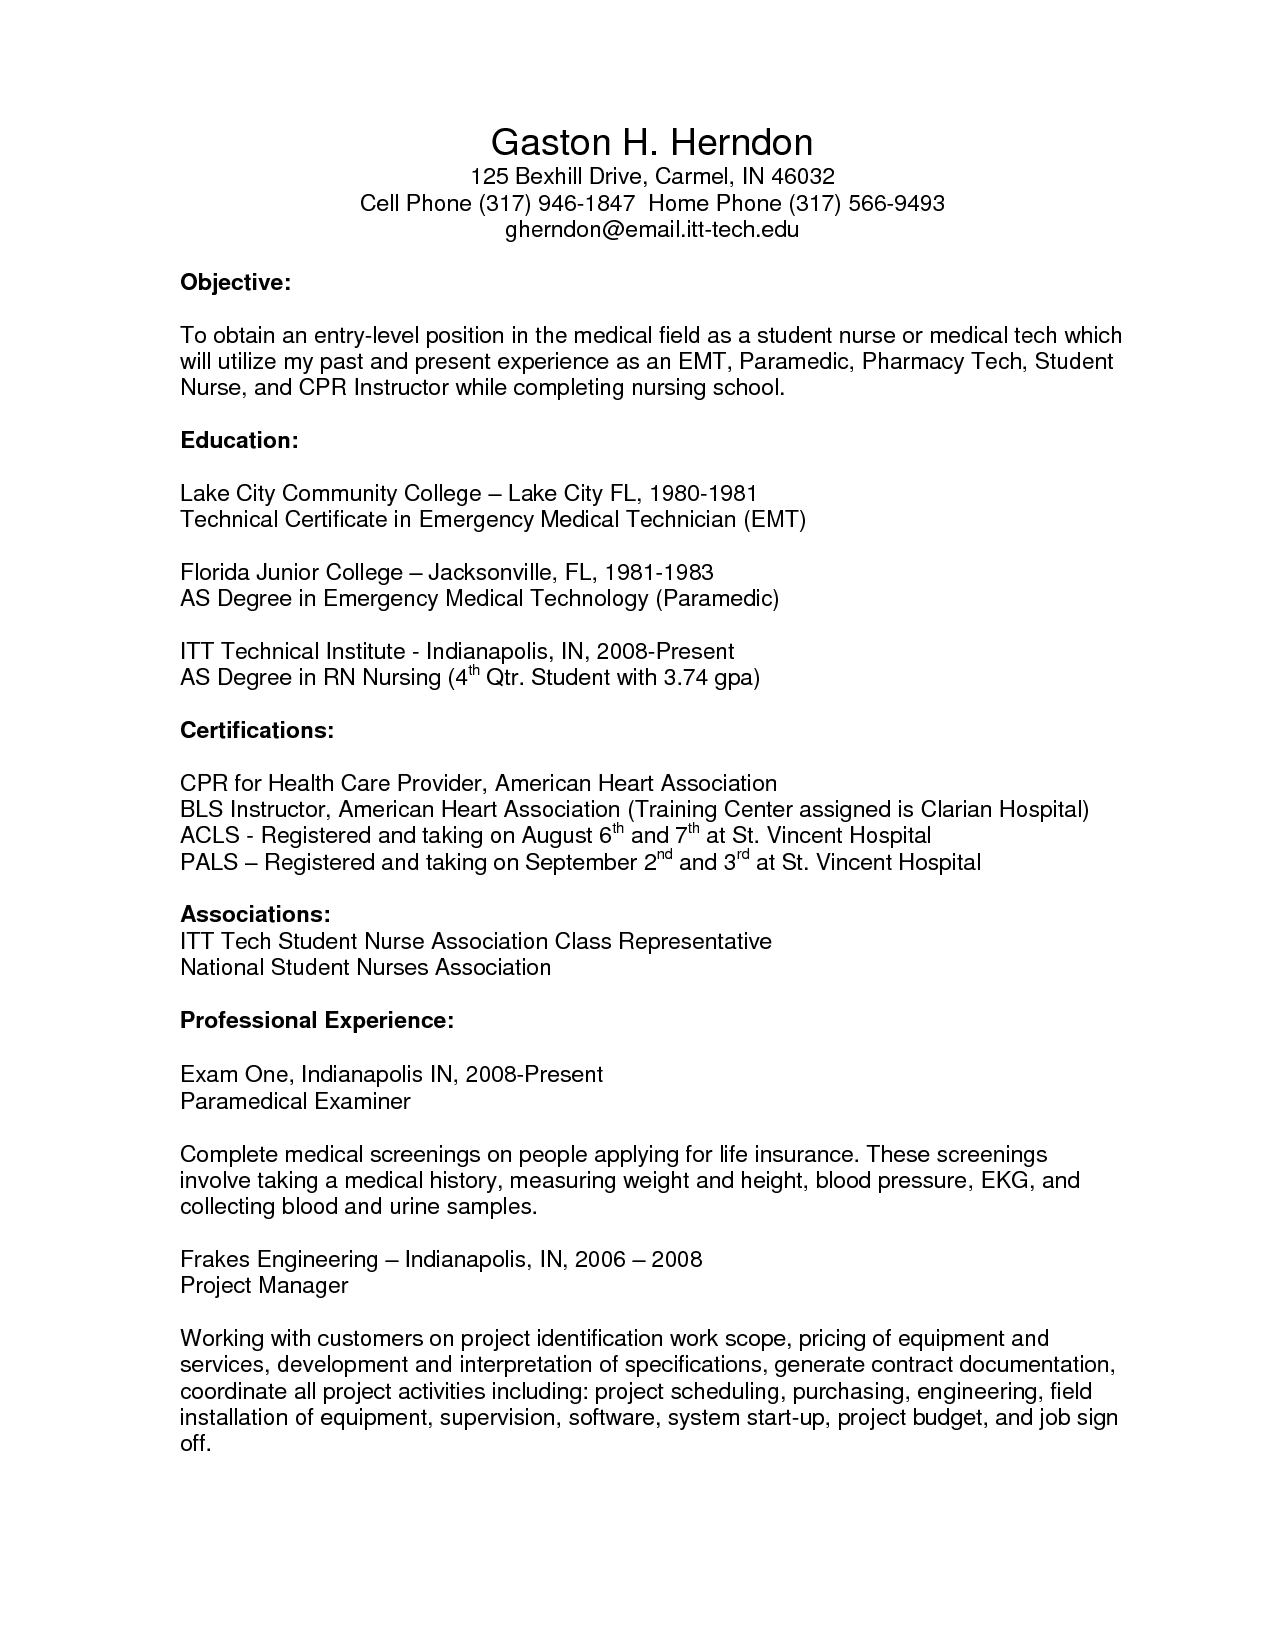 Simple Job Resume Template Resume For Triage Nurse  Httpwwwresumecareerresumefor